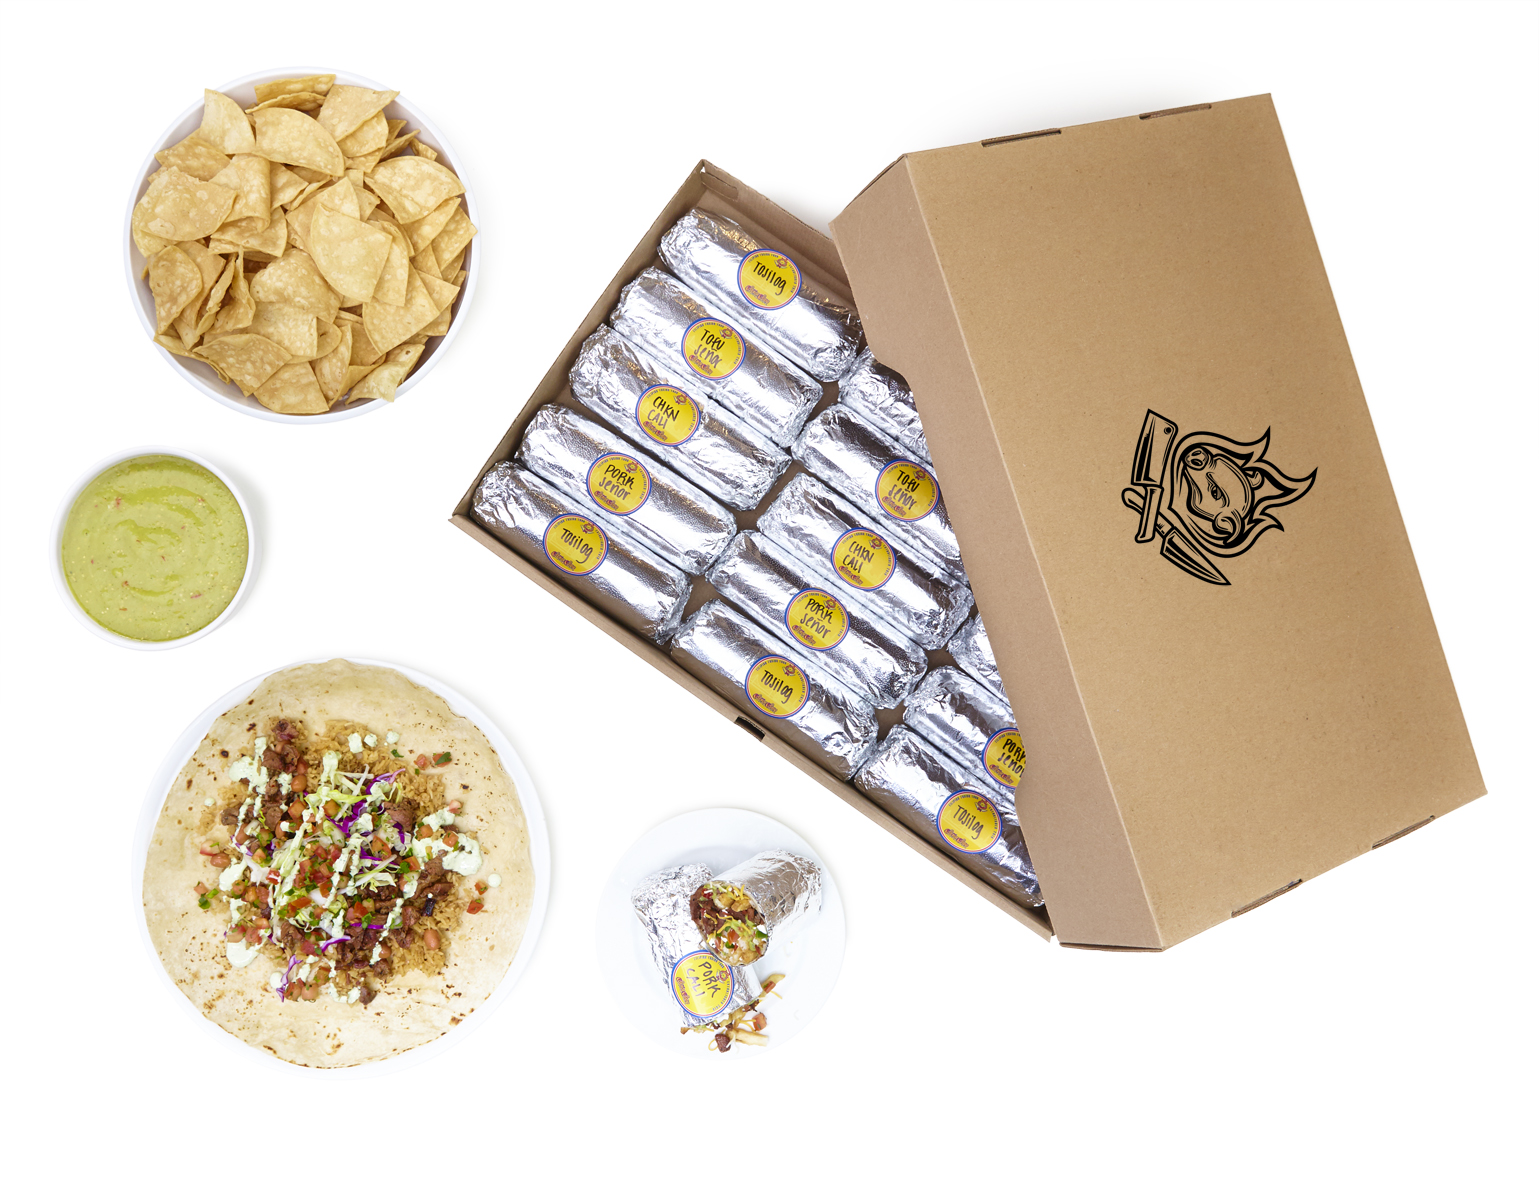 - Mix and match our Senor Sisig classics, the Senor, Cali or Tosilog burrito. Burritos are served with chips and salsa.